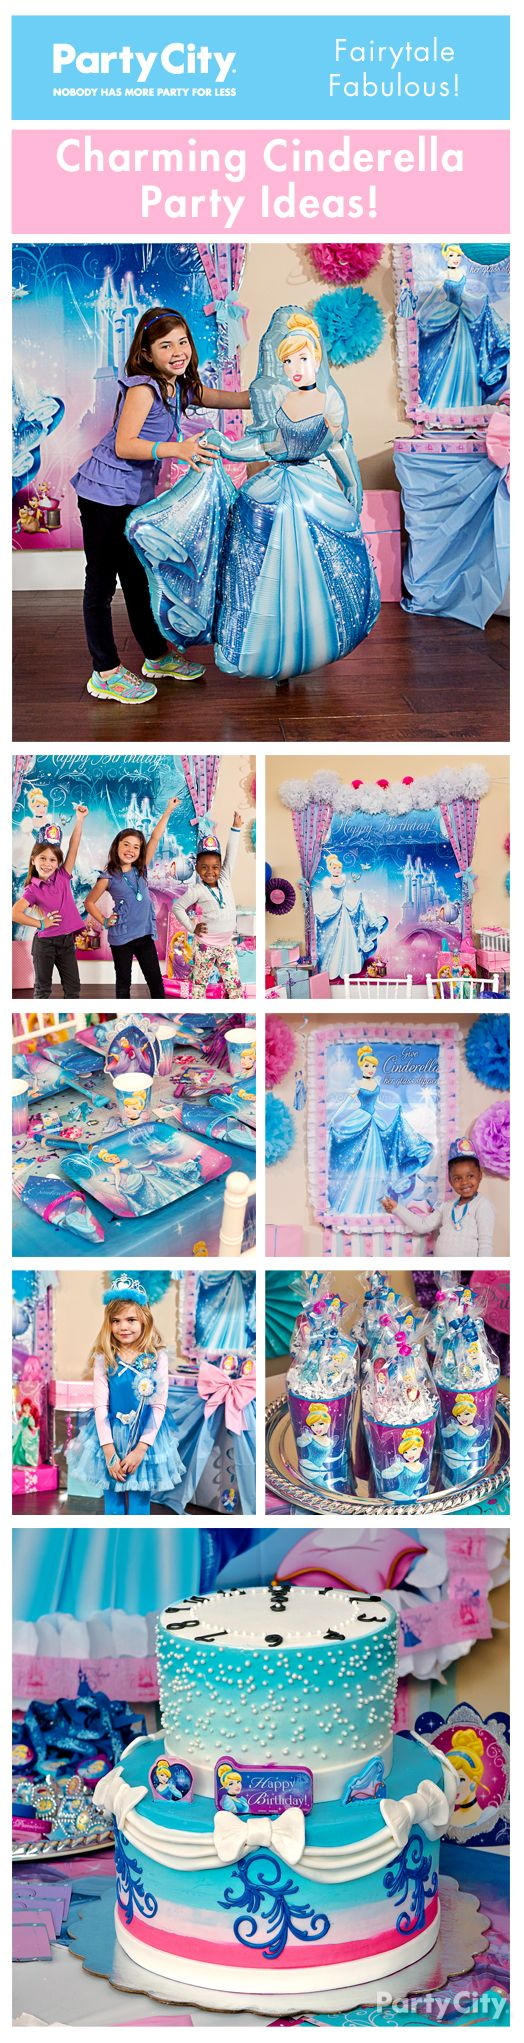 No need for a fairy godmother to throw your daughter an enchanting Cinderella birthday celebration! From table settings to fun games, there's magical inspiration for everything!